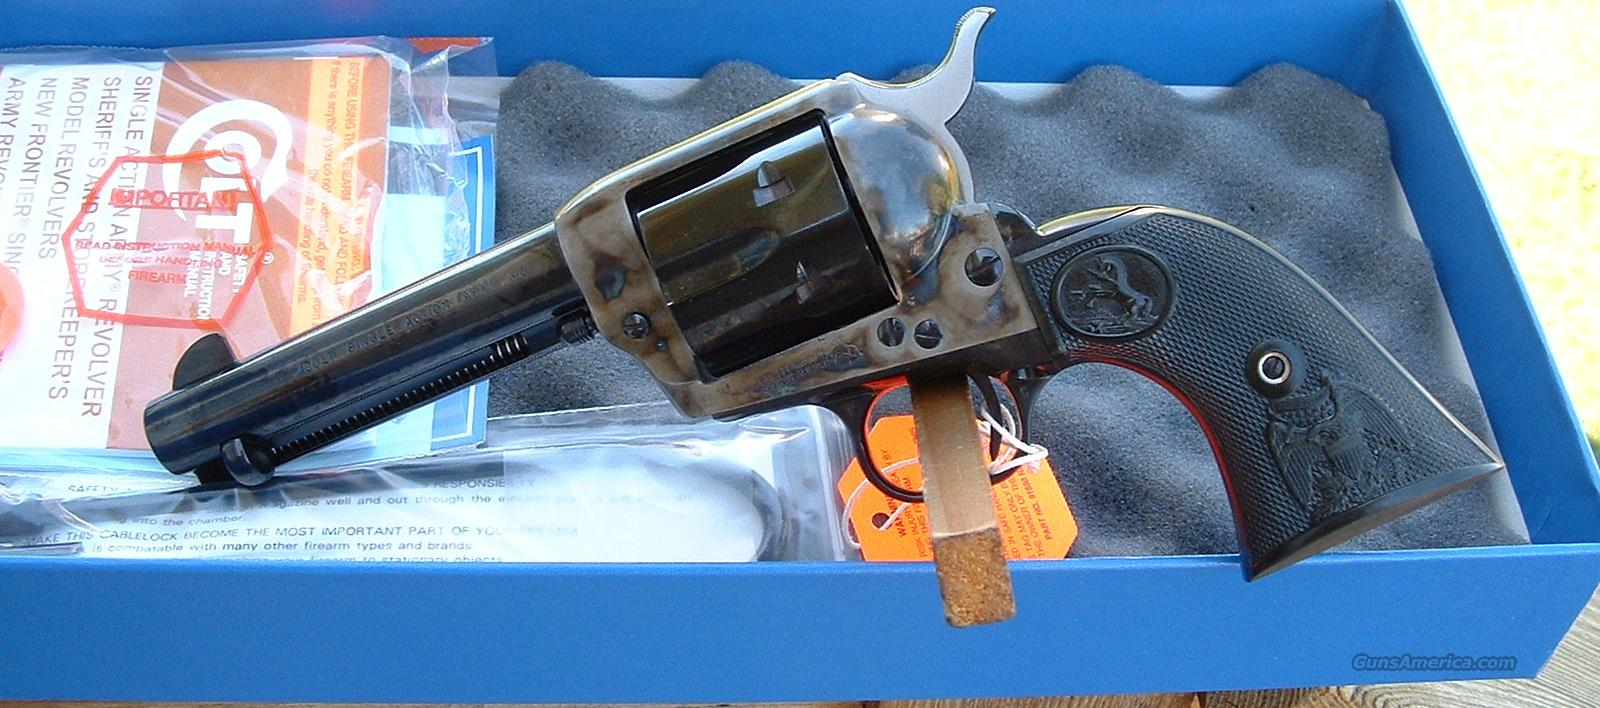 "Colt SAA 44-40 4.75"" Case Color New!   Guns > Pistols > Colt Single Action Revolvers - 3rd Gen."